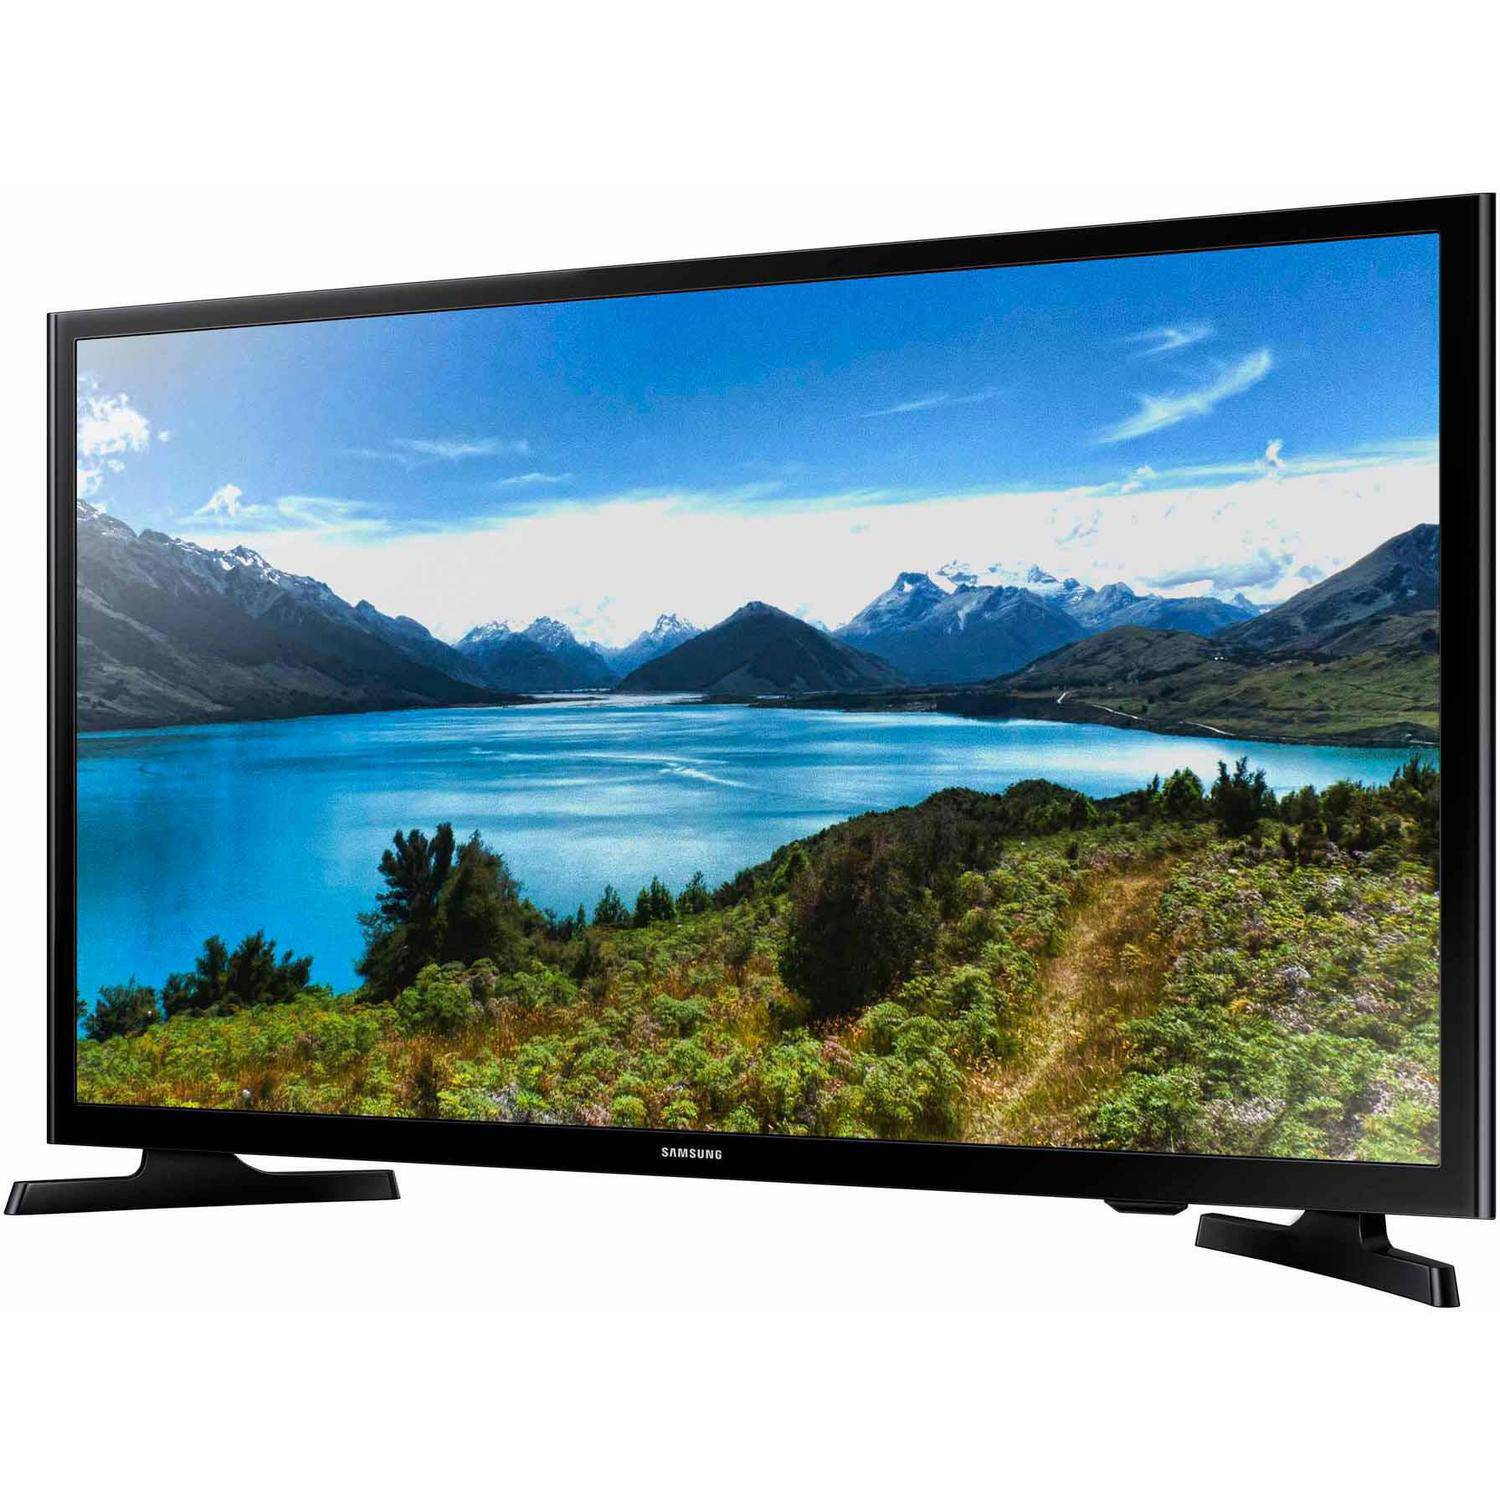 "Refurbished Samsung 32"" Class HD (720P) LED TV (UN32J400DCFXZA)"